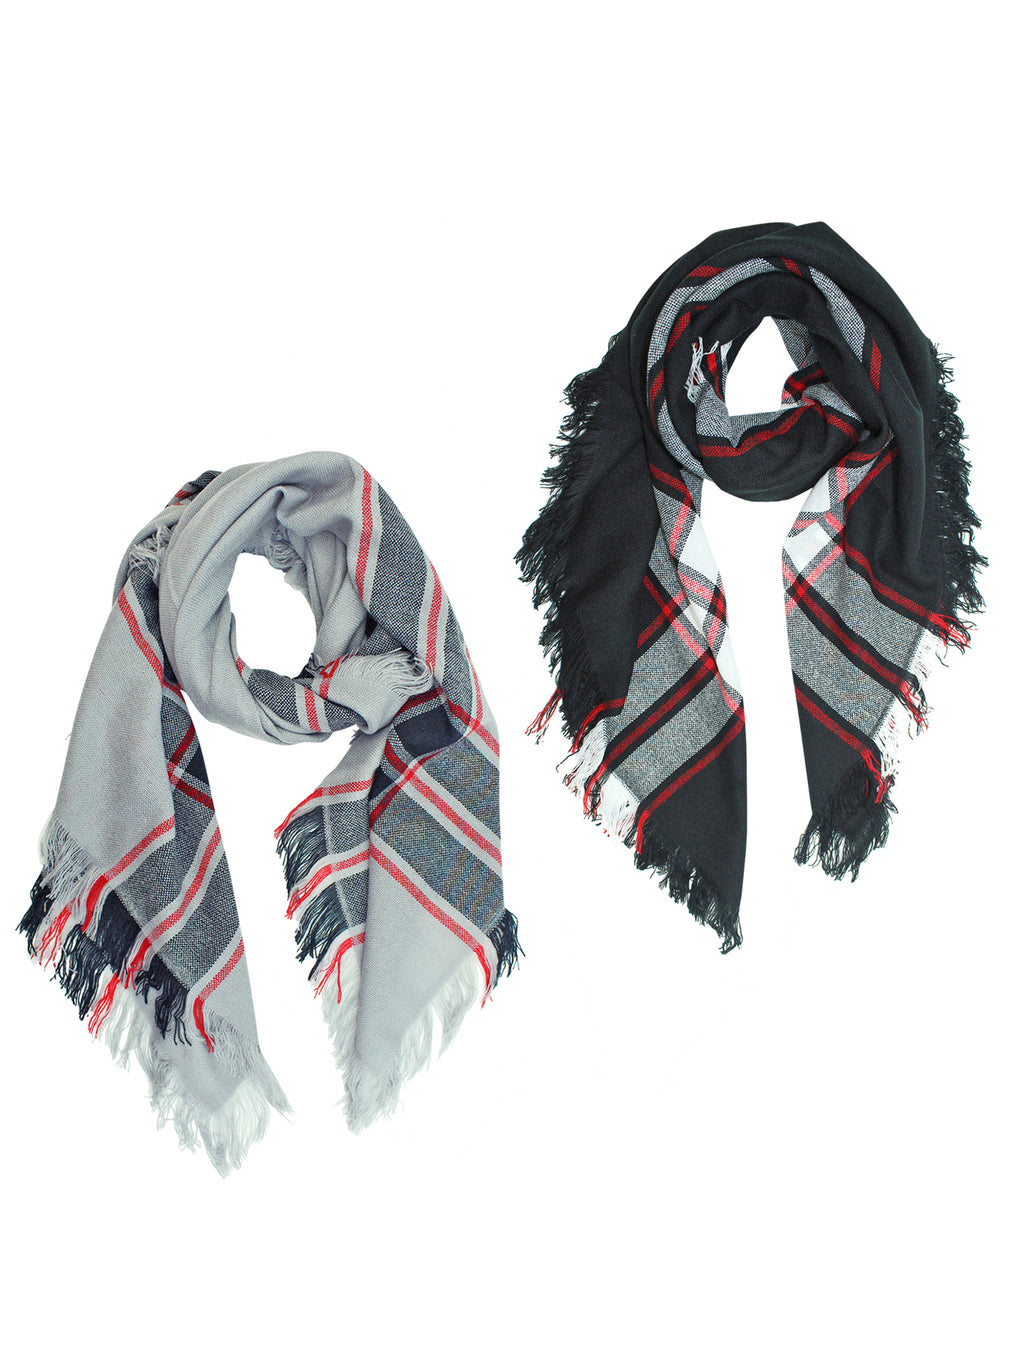 Gray White Wool Plaid Oversized Blanket Scarf 2 Pack Set